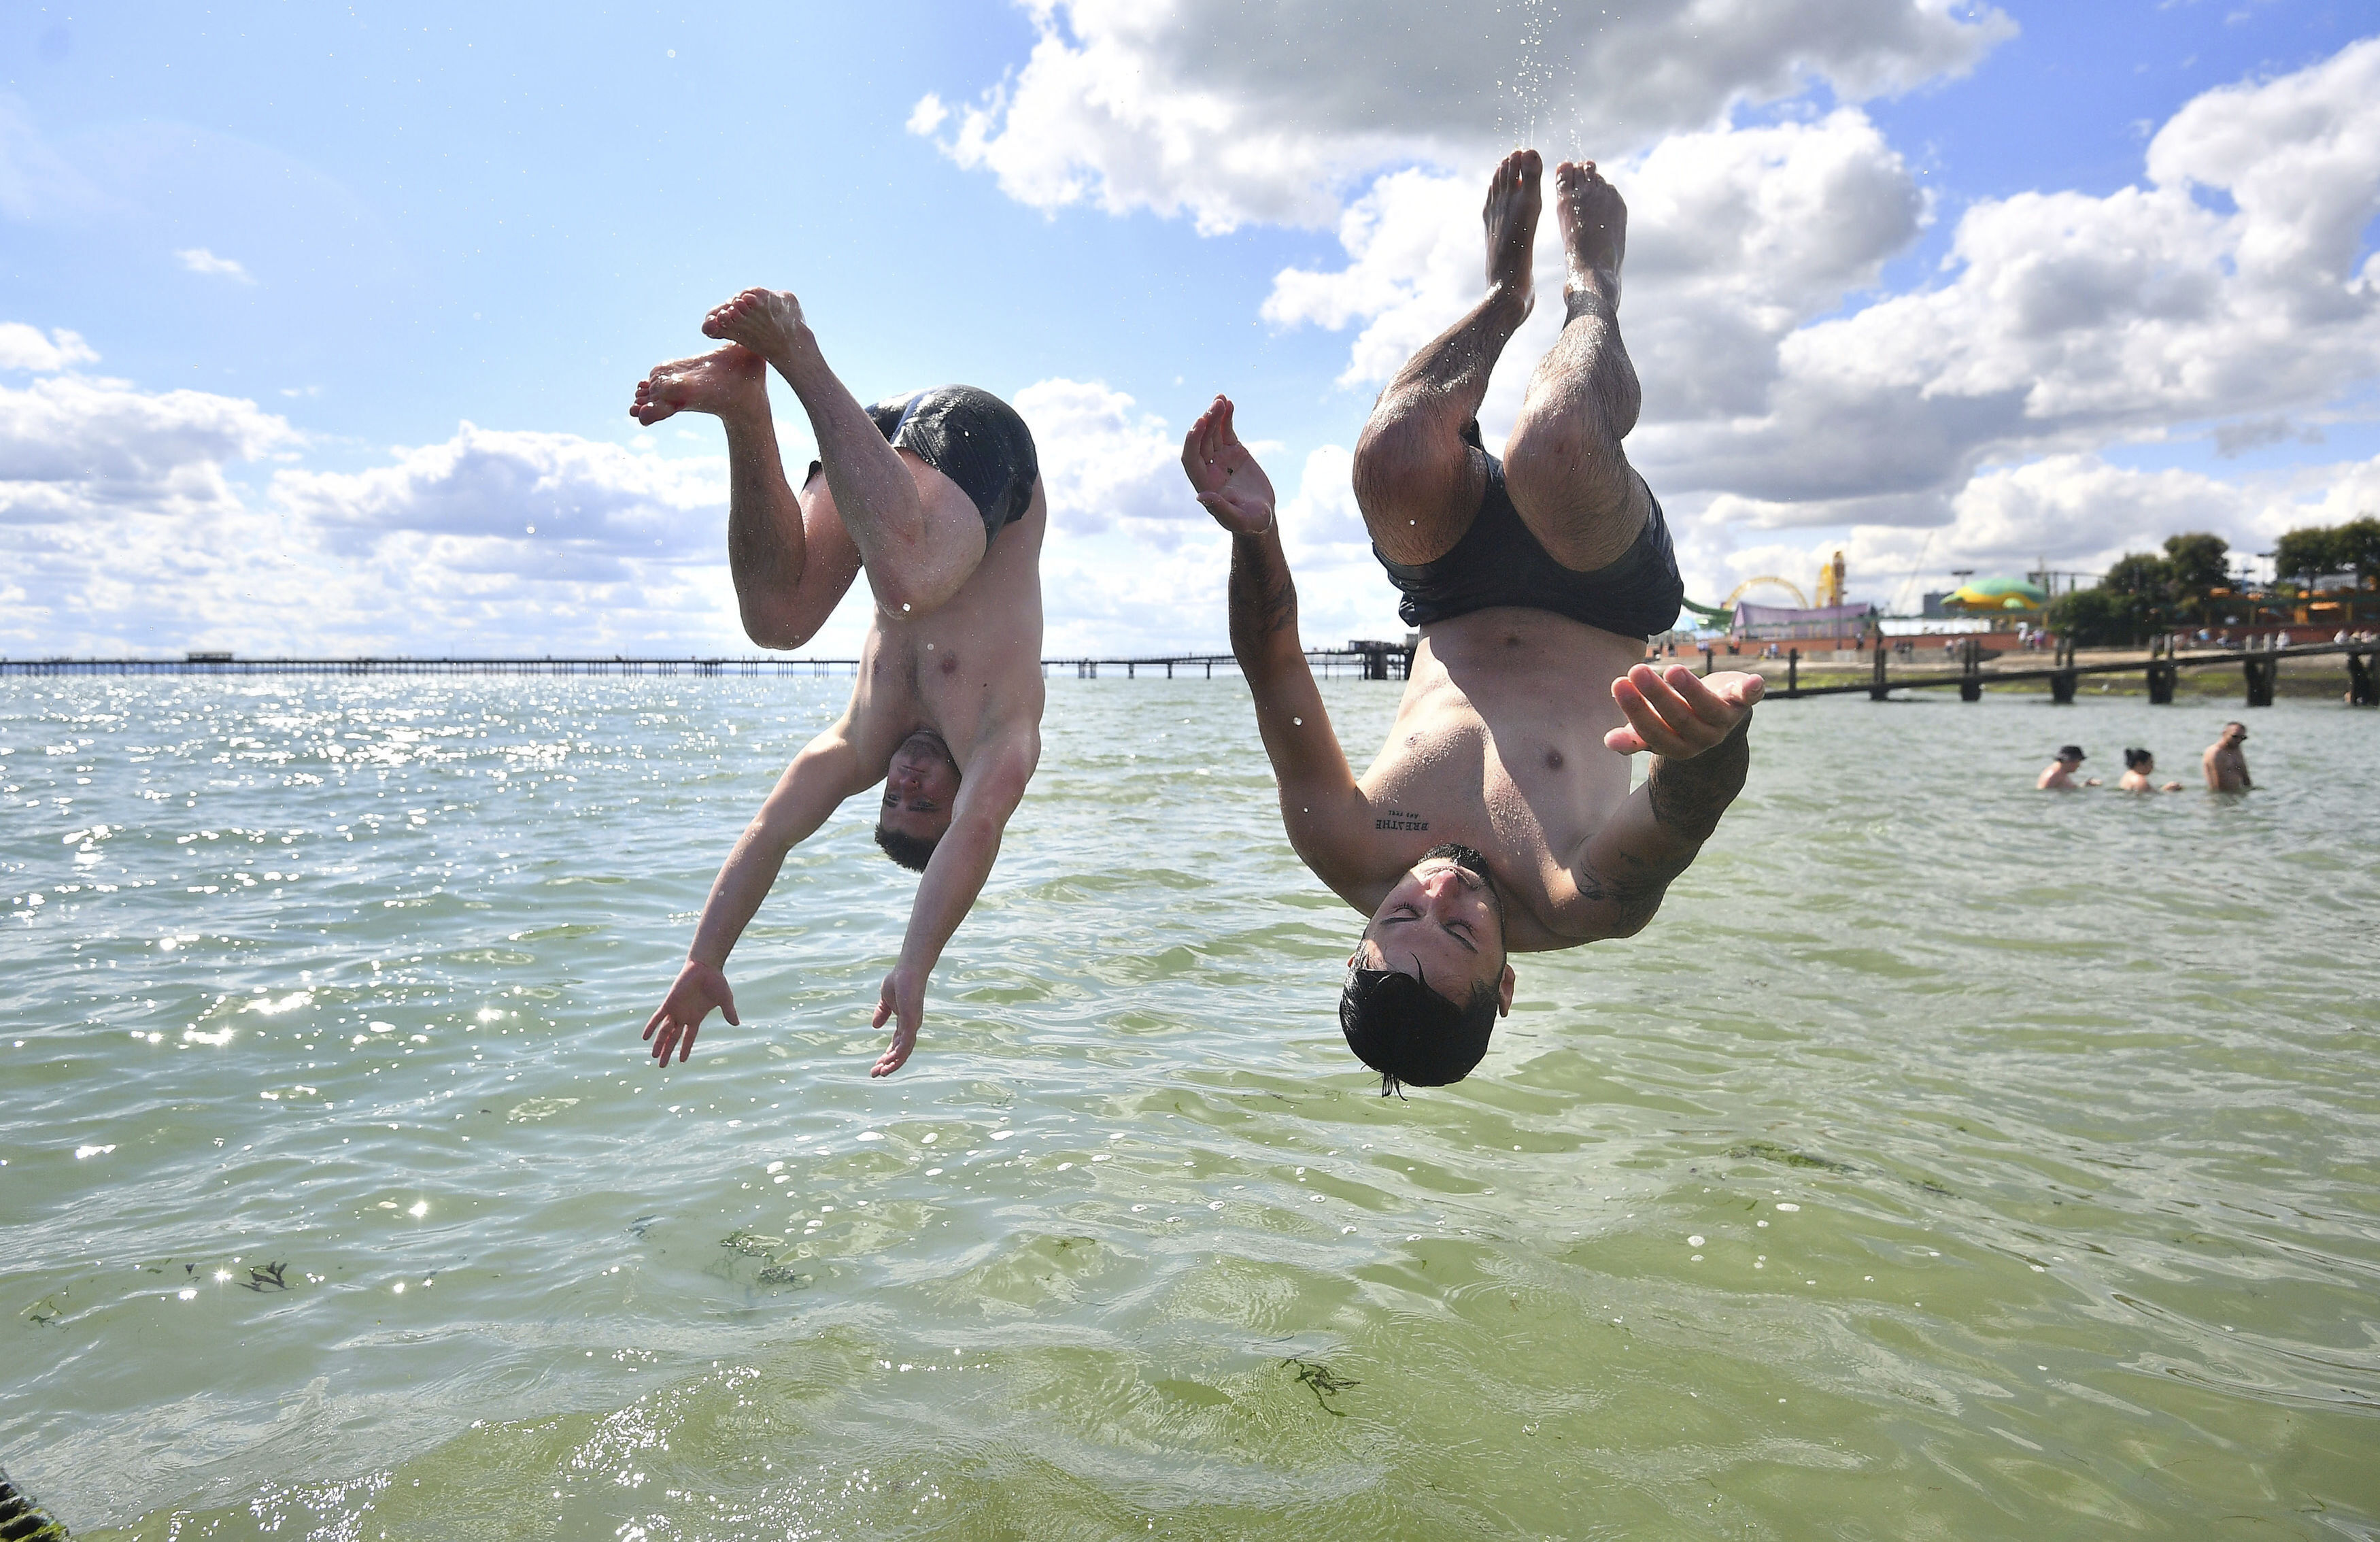 Men jump from a jetty into the water as the hot weather continues, at Southend-on-Sea, in England, Sunday, Aug. 2, 2020. (Victoria Jones/PA via AP)